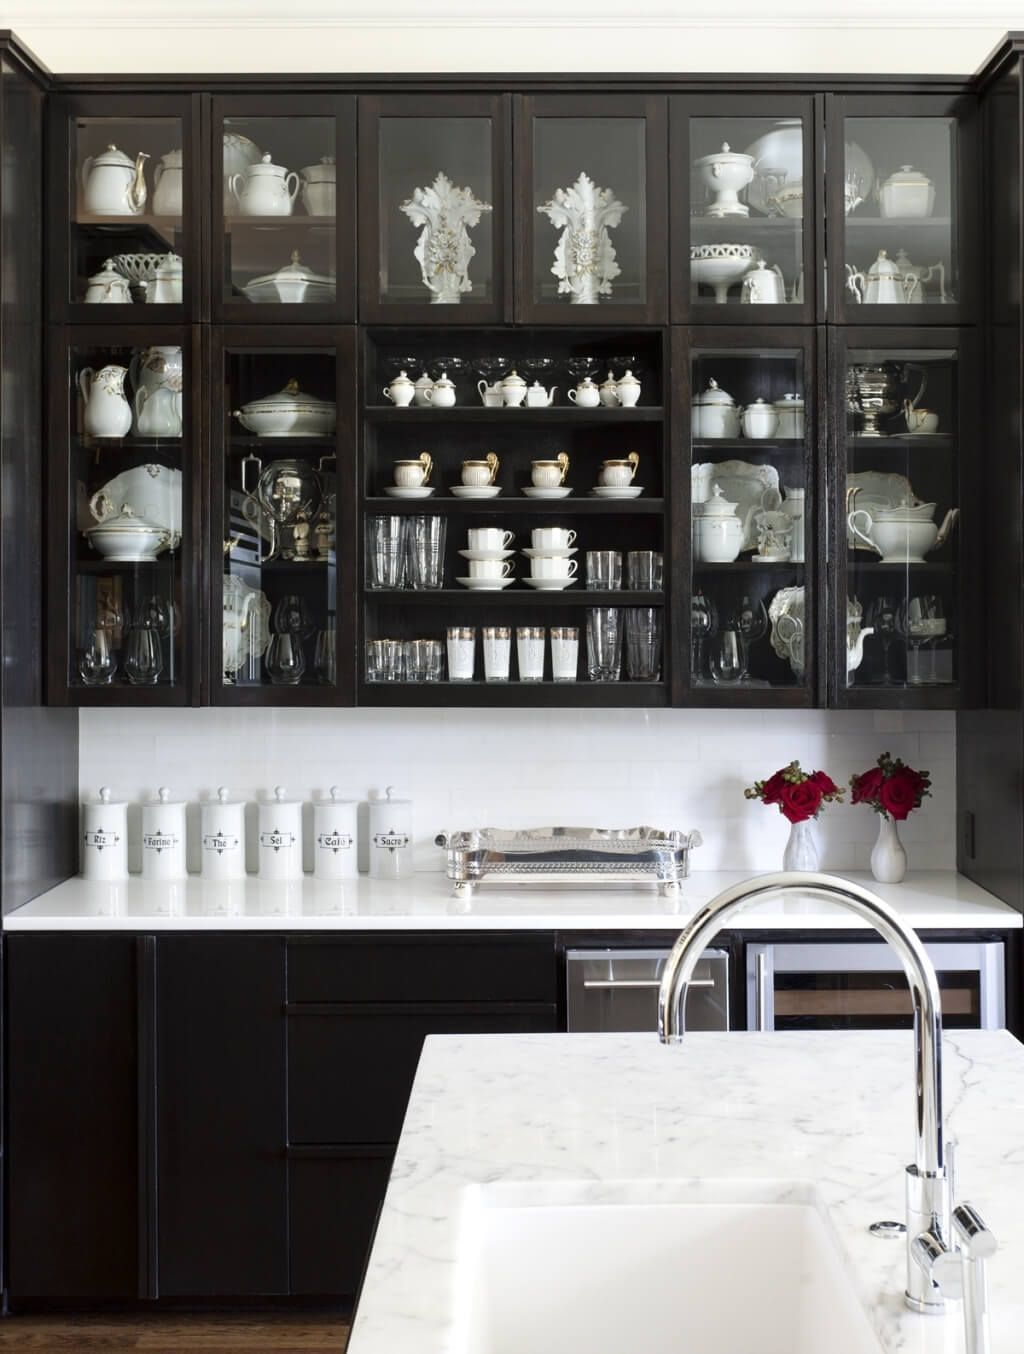 Captivating Black Kitchen Cabinets With Glass Doors And White Marble Counters Filled With Household G Black Kitchen Cabinets Dark Kitchen Cabinets Dark Kitchen